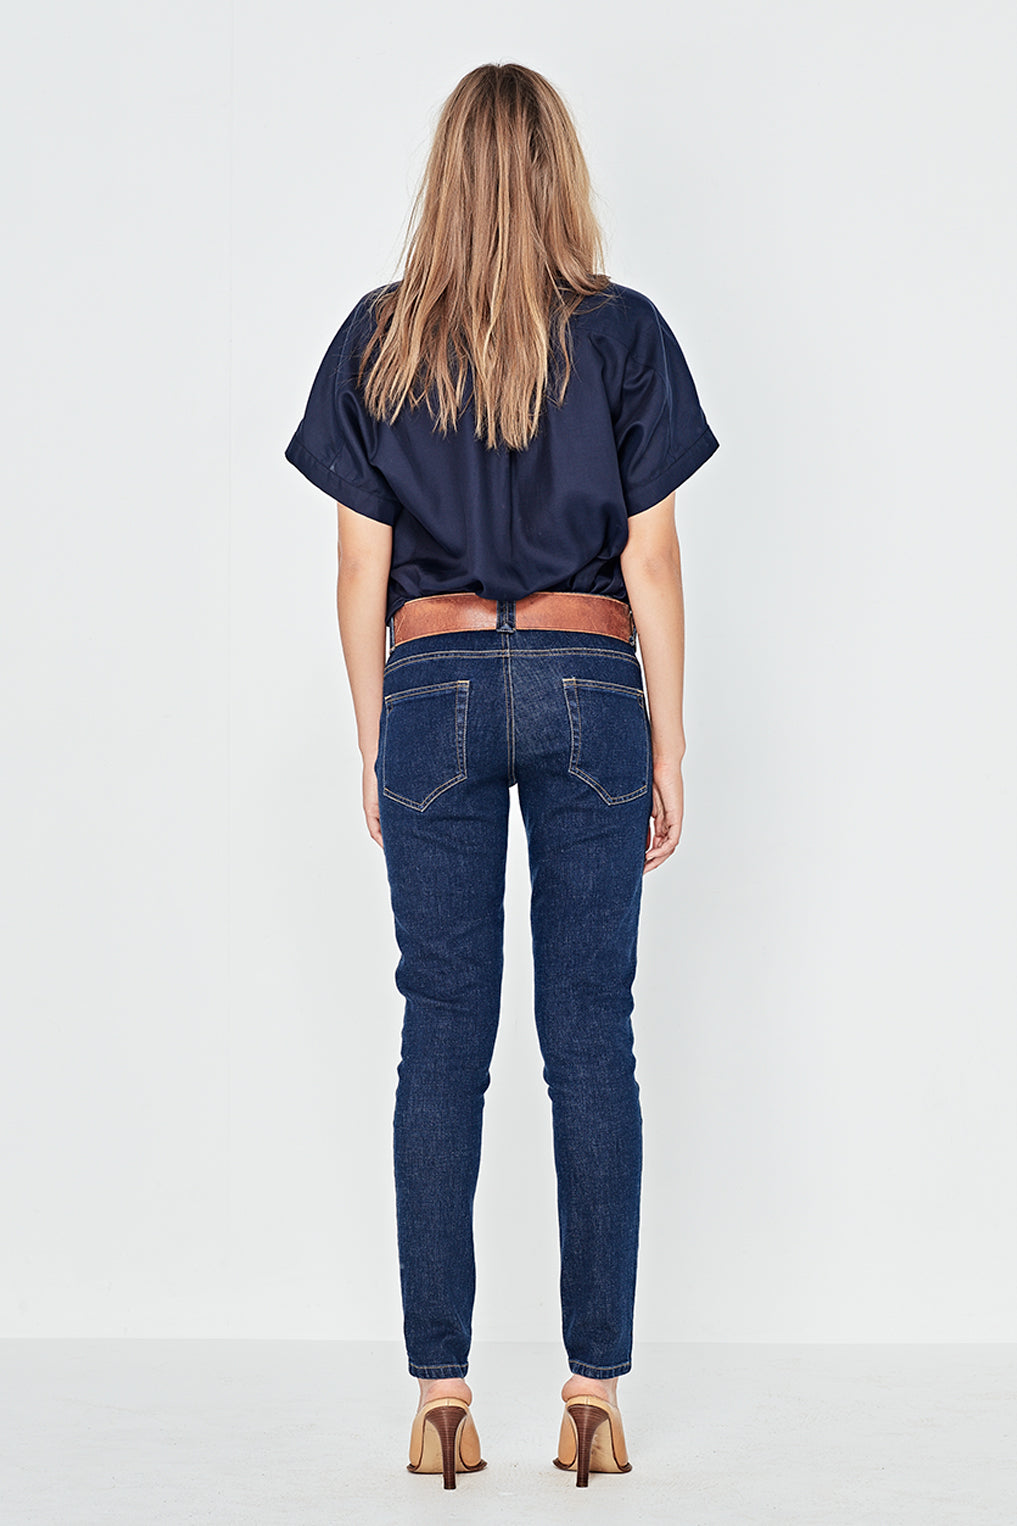 The Bonnie Blouse in Navy